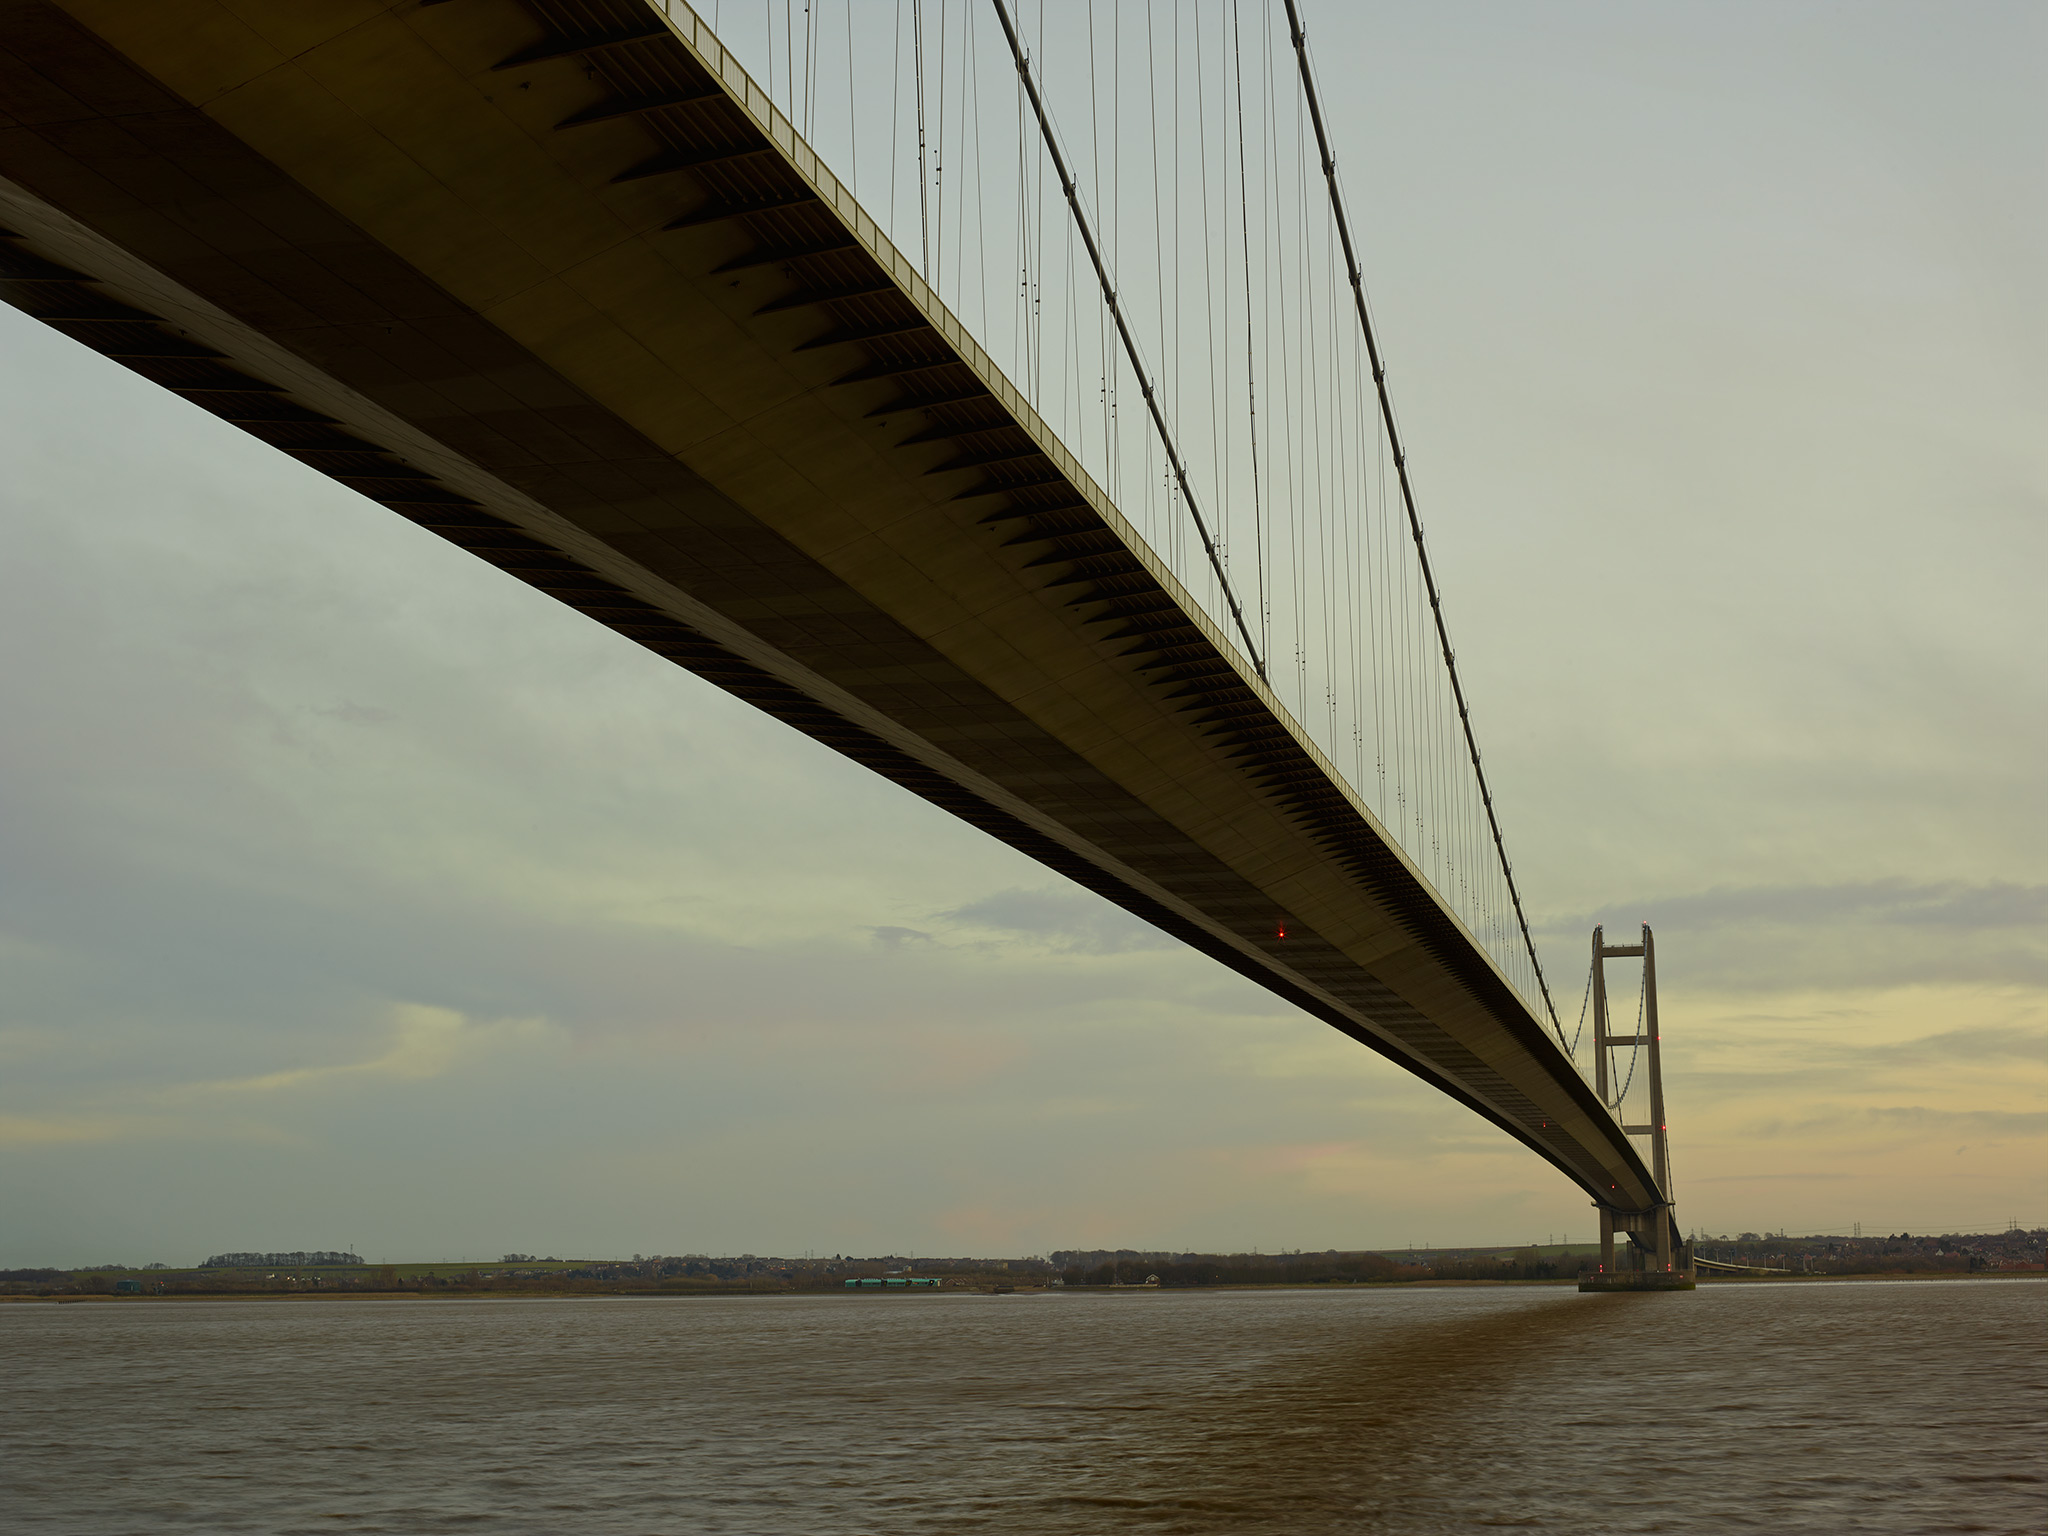 take it to the bridge  when the humber bridge opened in 1981 it was the longest single span suspension bridge in the world simpson admires its brutal mini sm and the way its